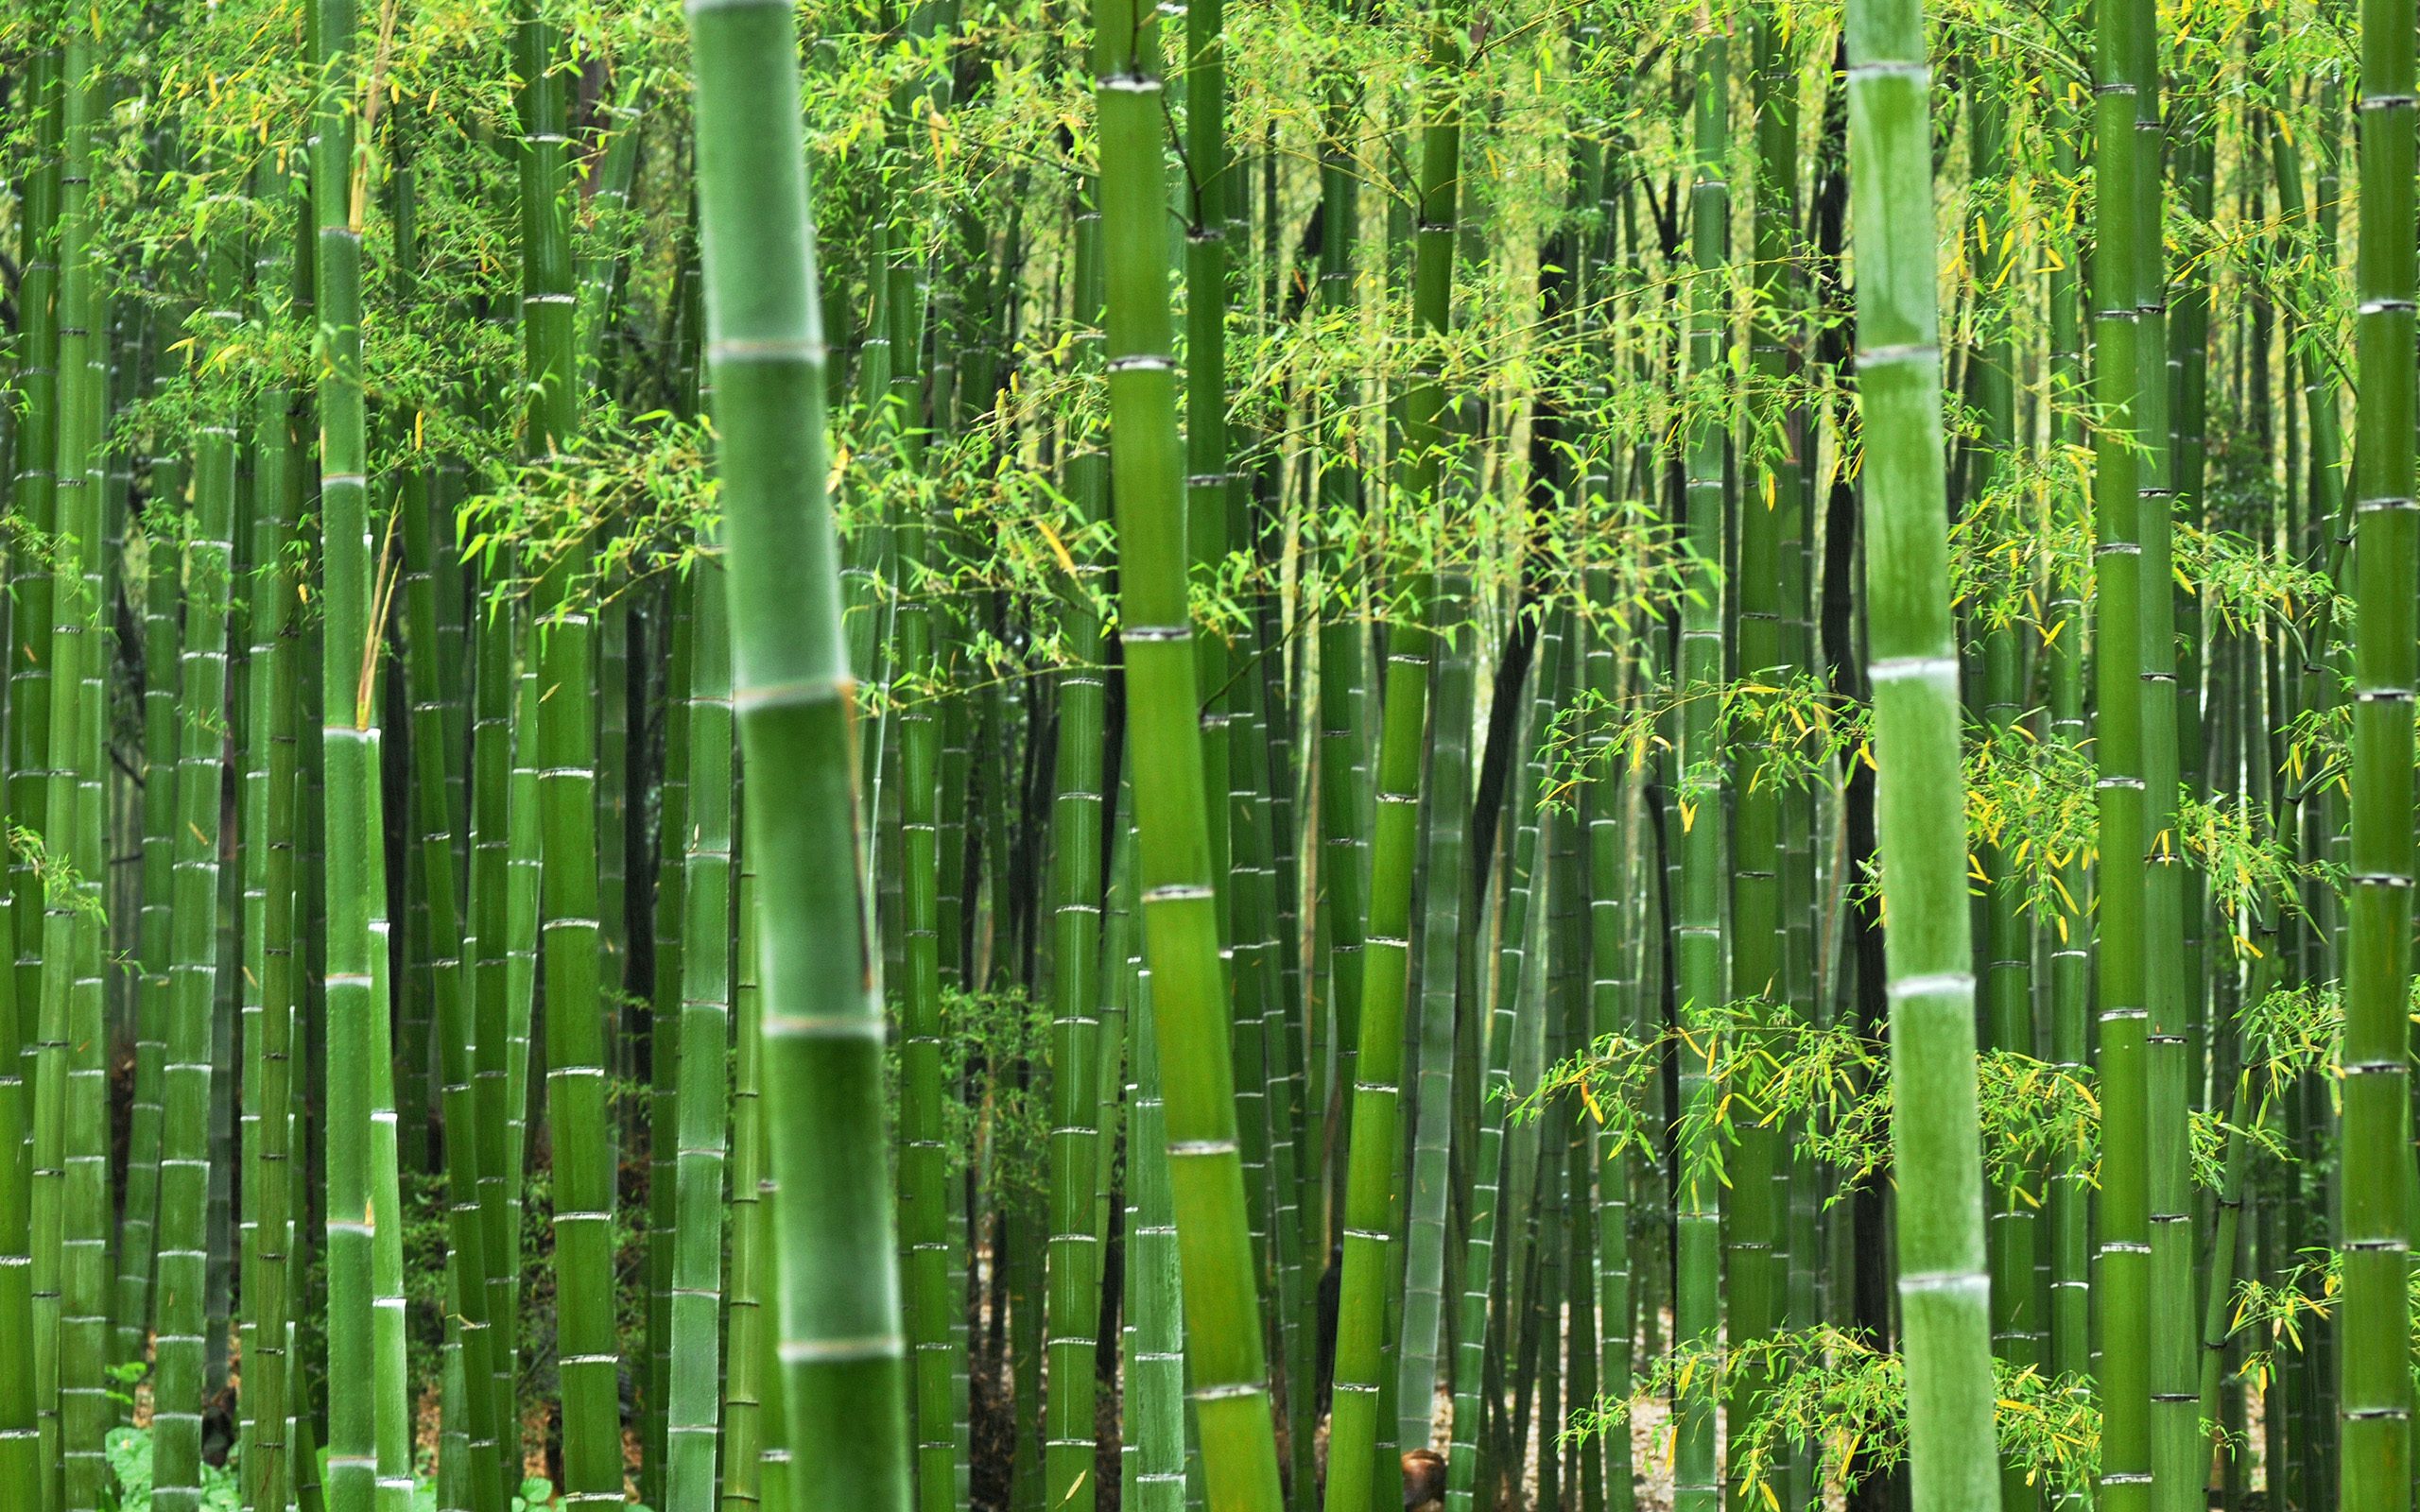 Bamboo HD wallpapers, Desktop wallpaper - most viewed